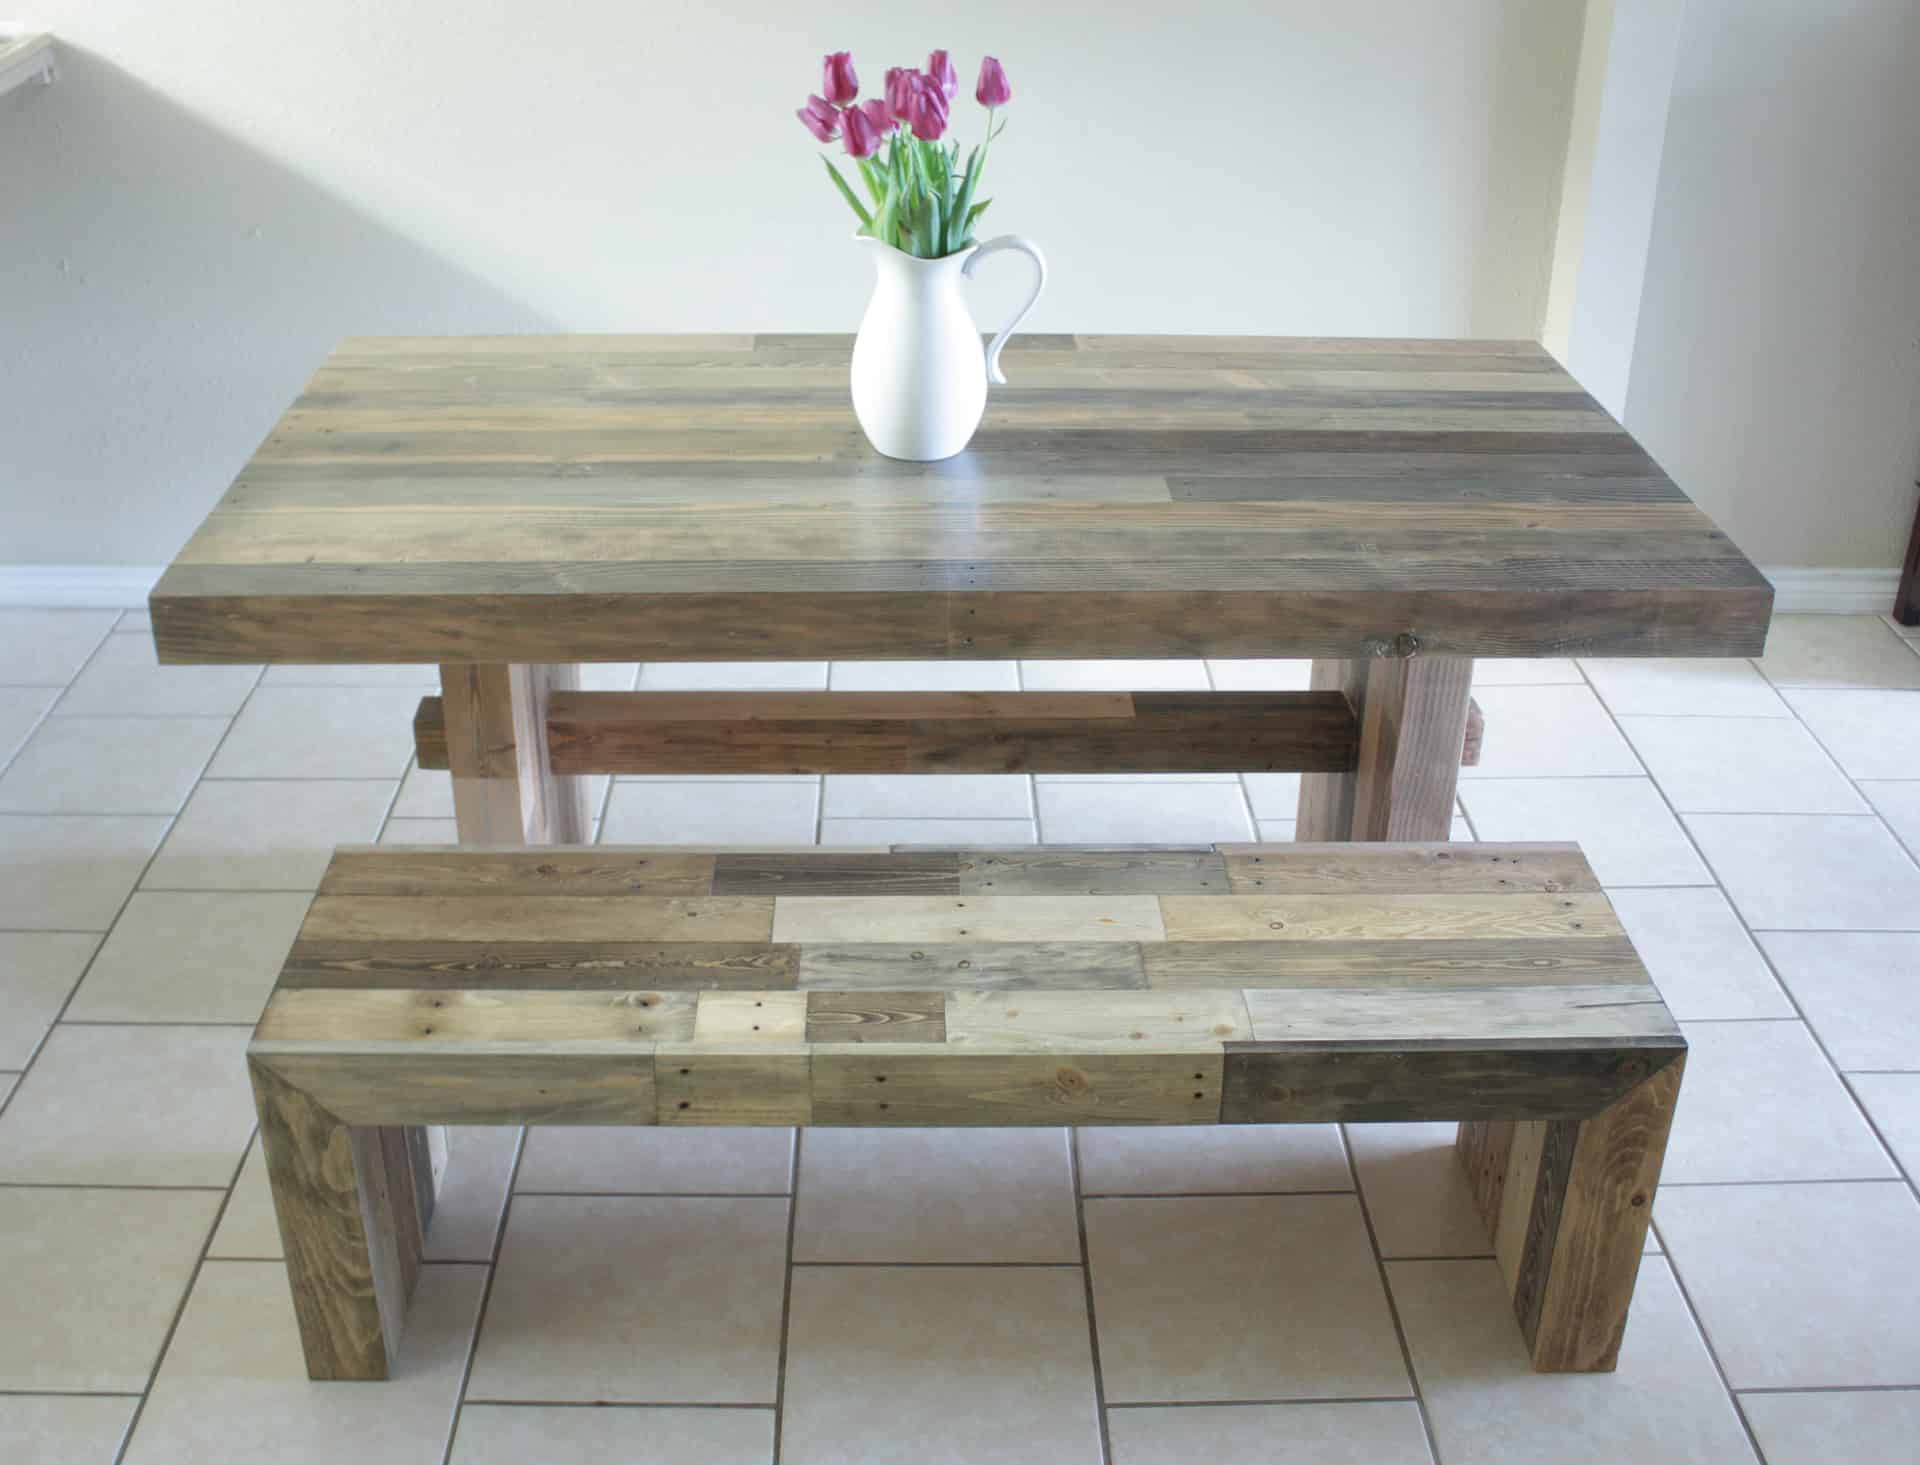 Knockoff West Elm Emmerson Dining Bench Build It Craft It Love It